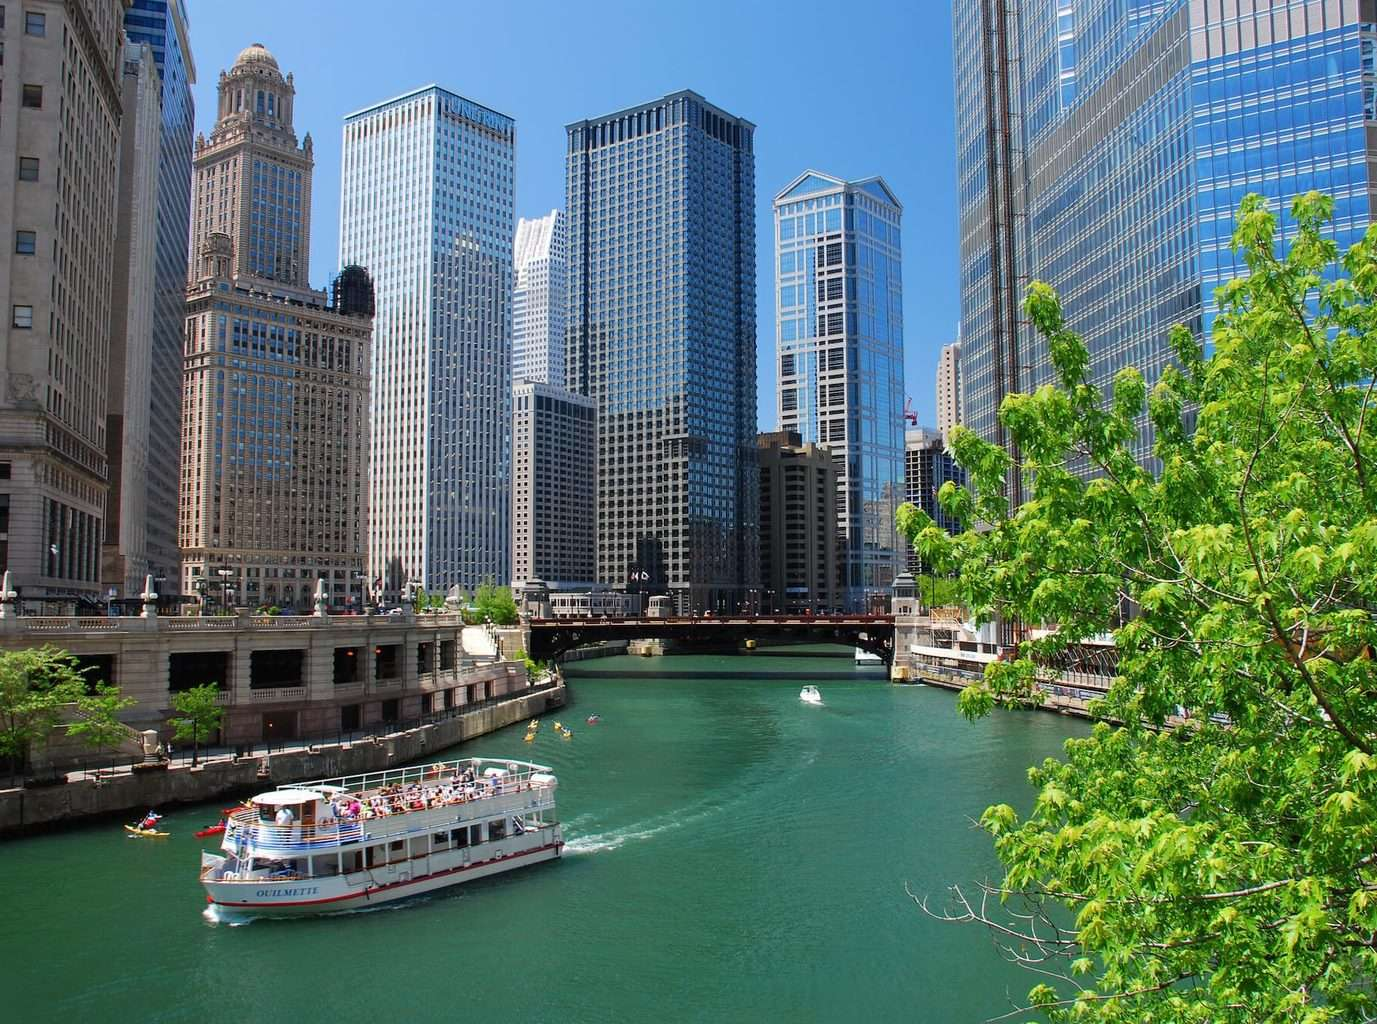 Luxury Trip to Chicago - River encased with glass buildings and skyscrapers